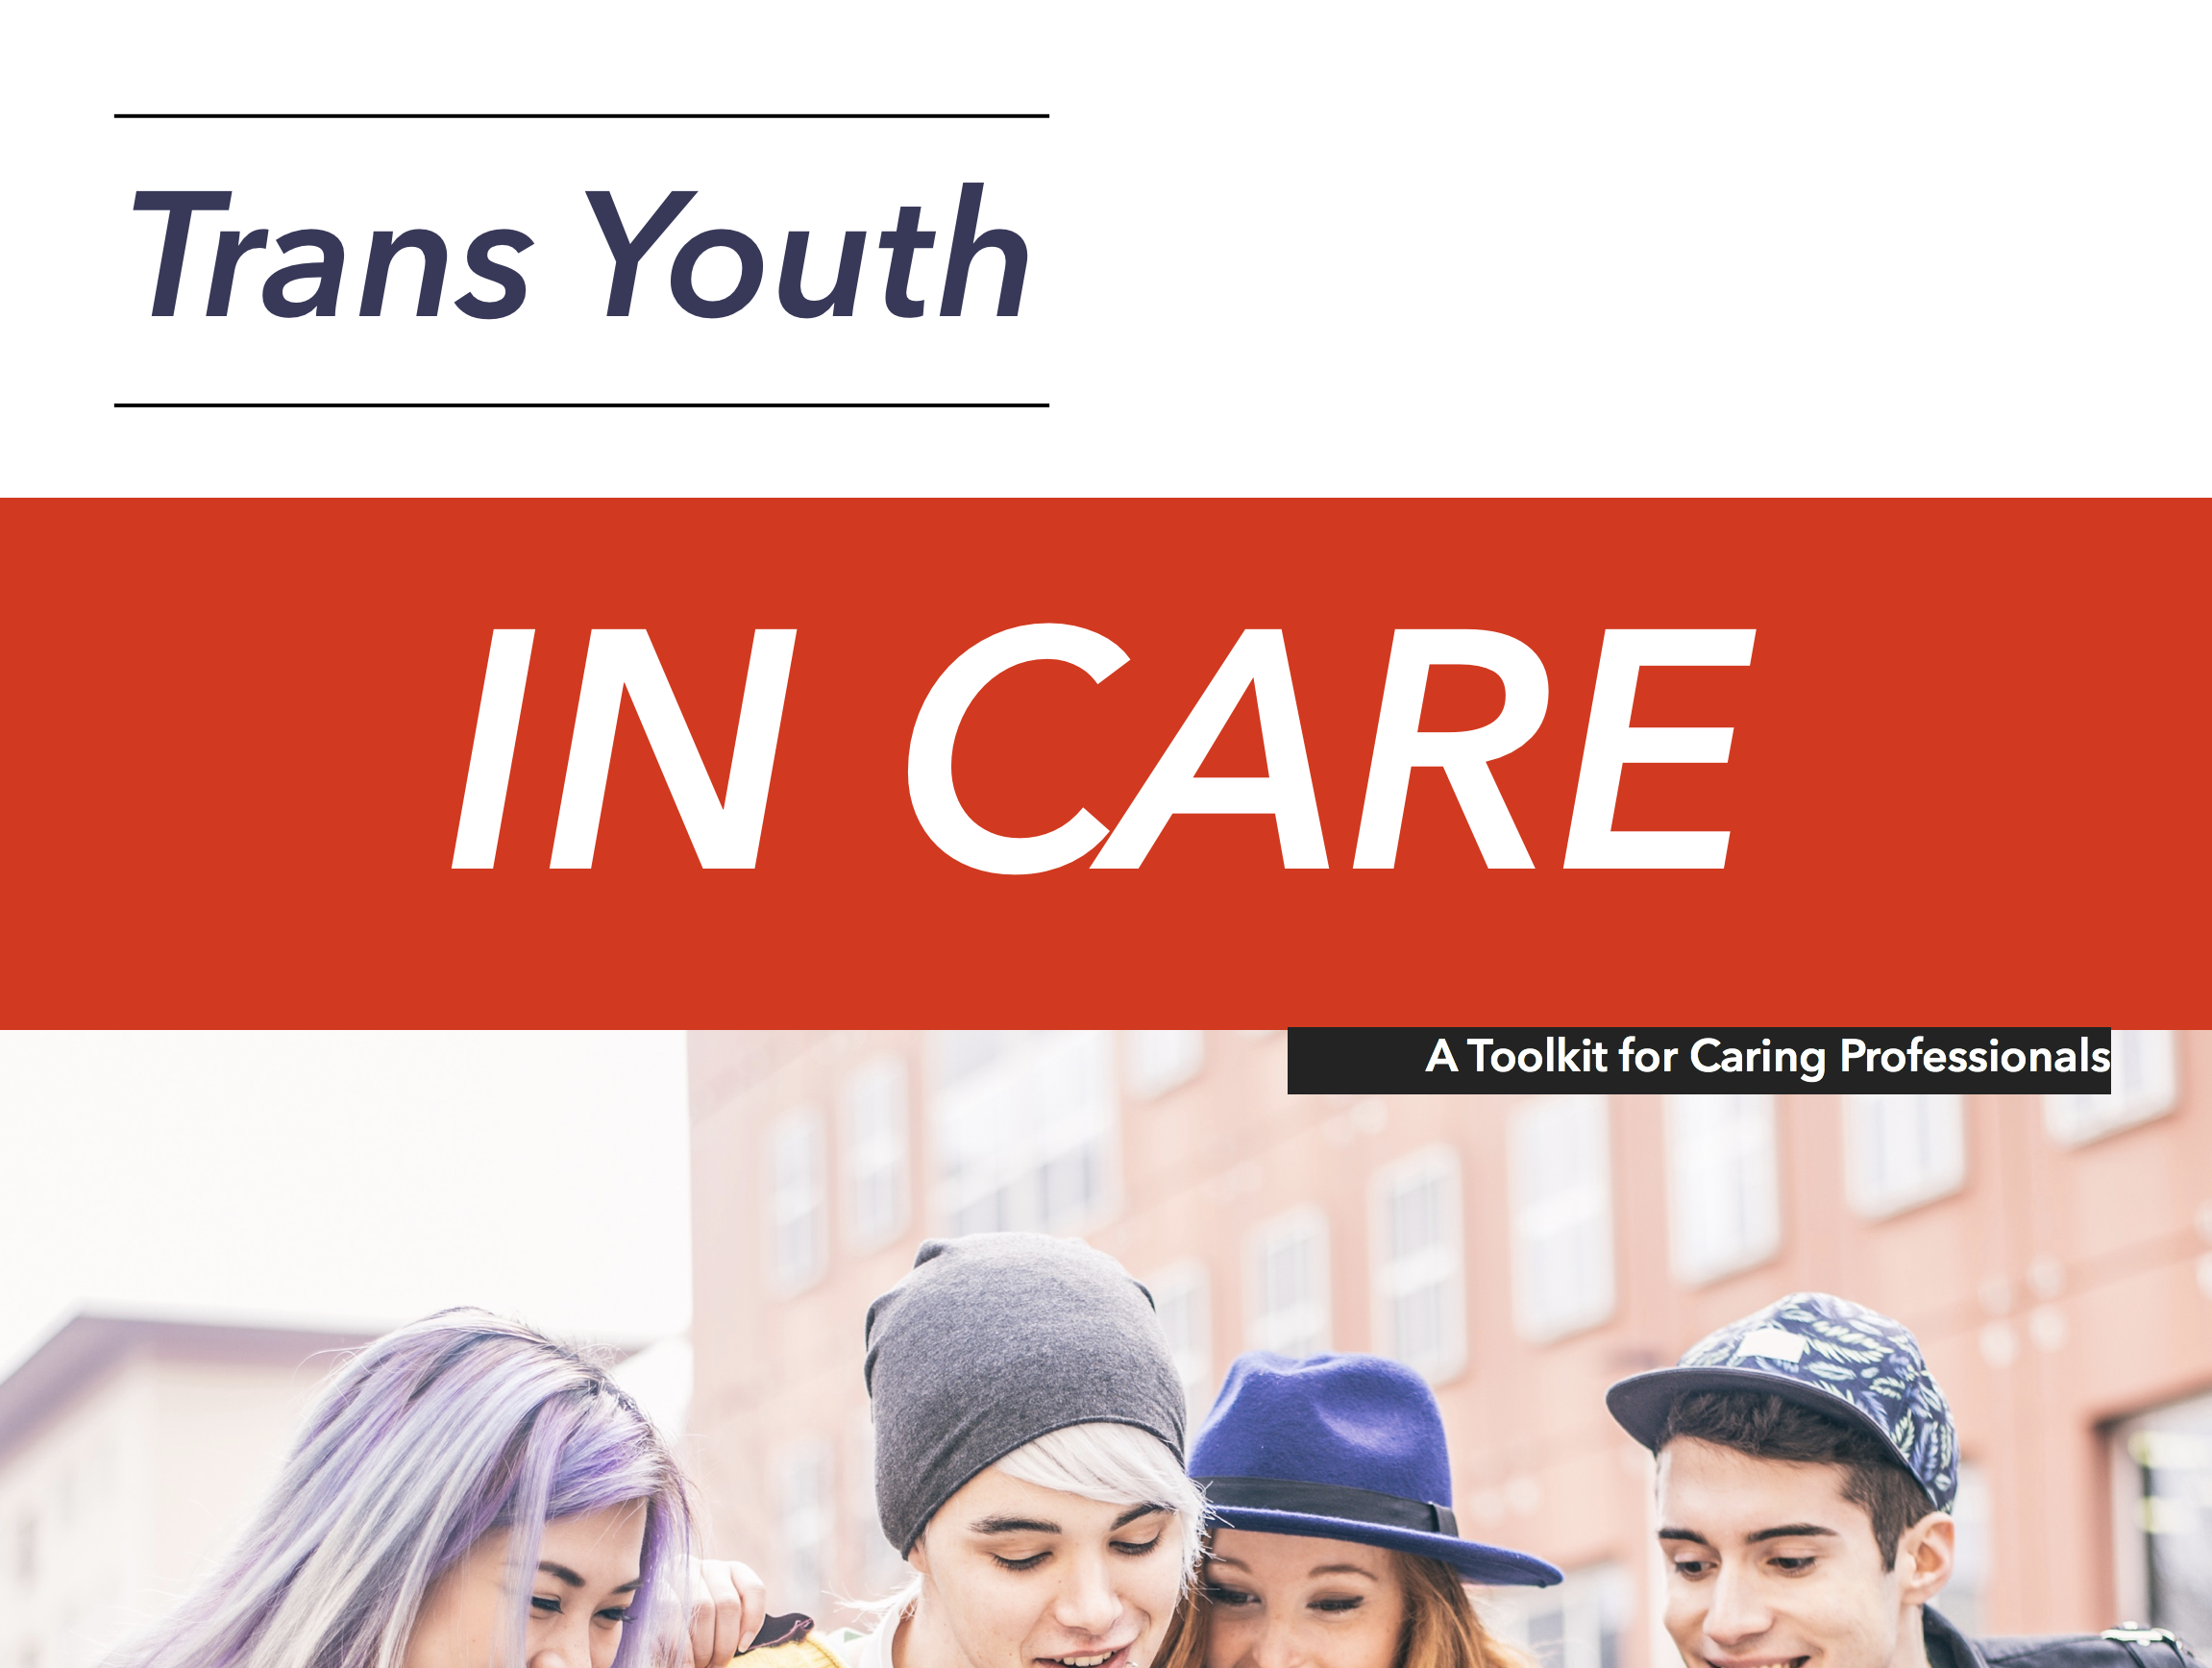 Trans Youth in Care - A Toolkit for Social Care Professionals